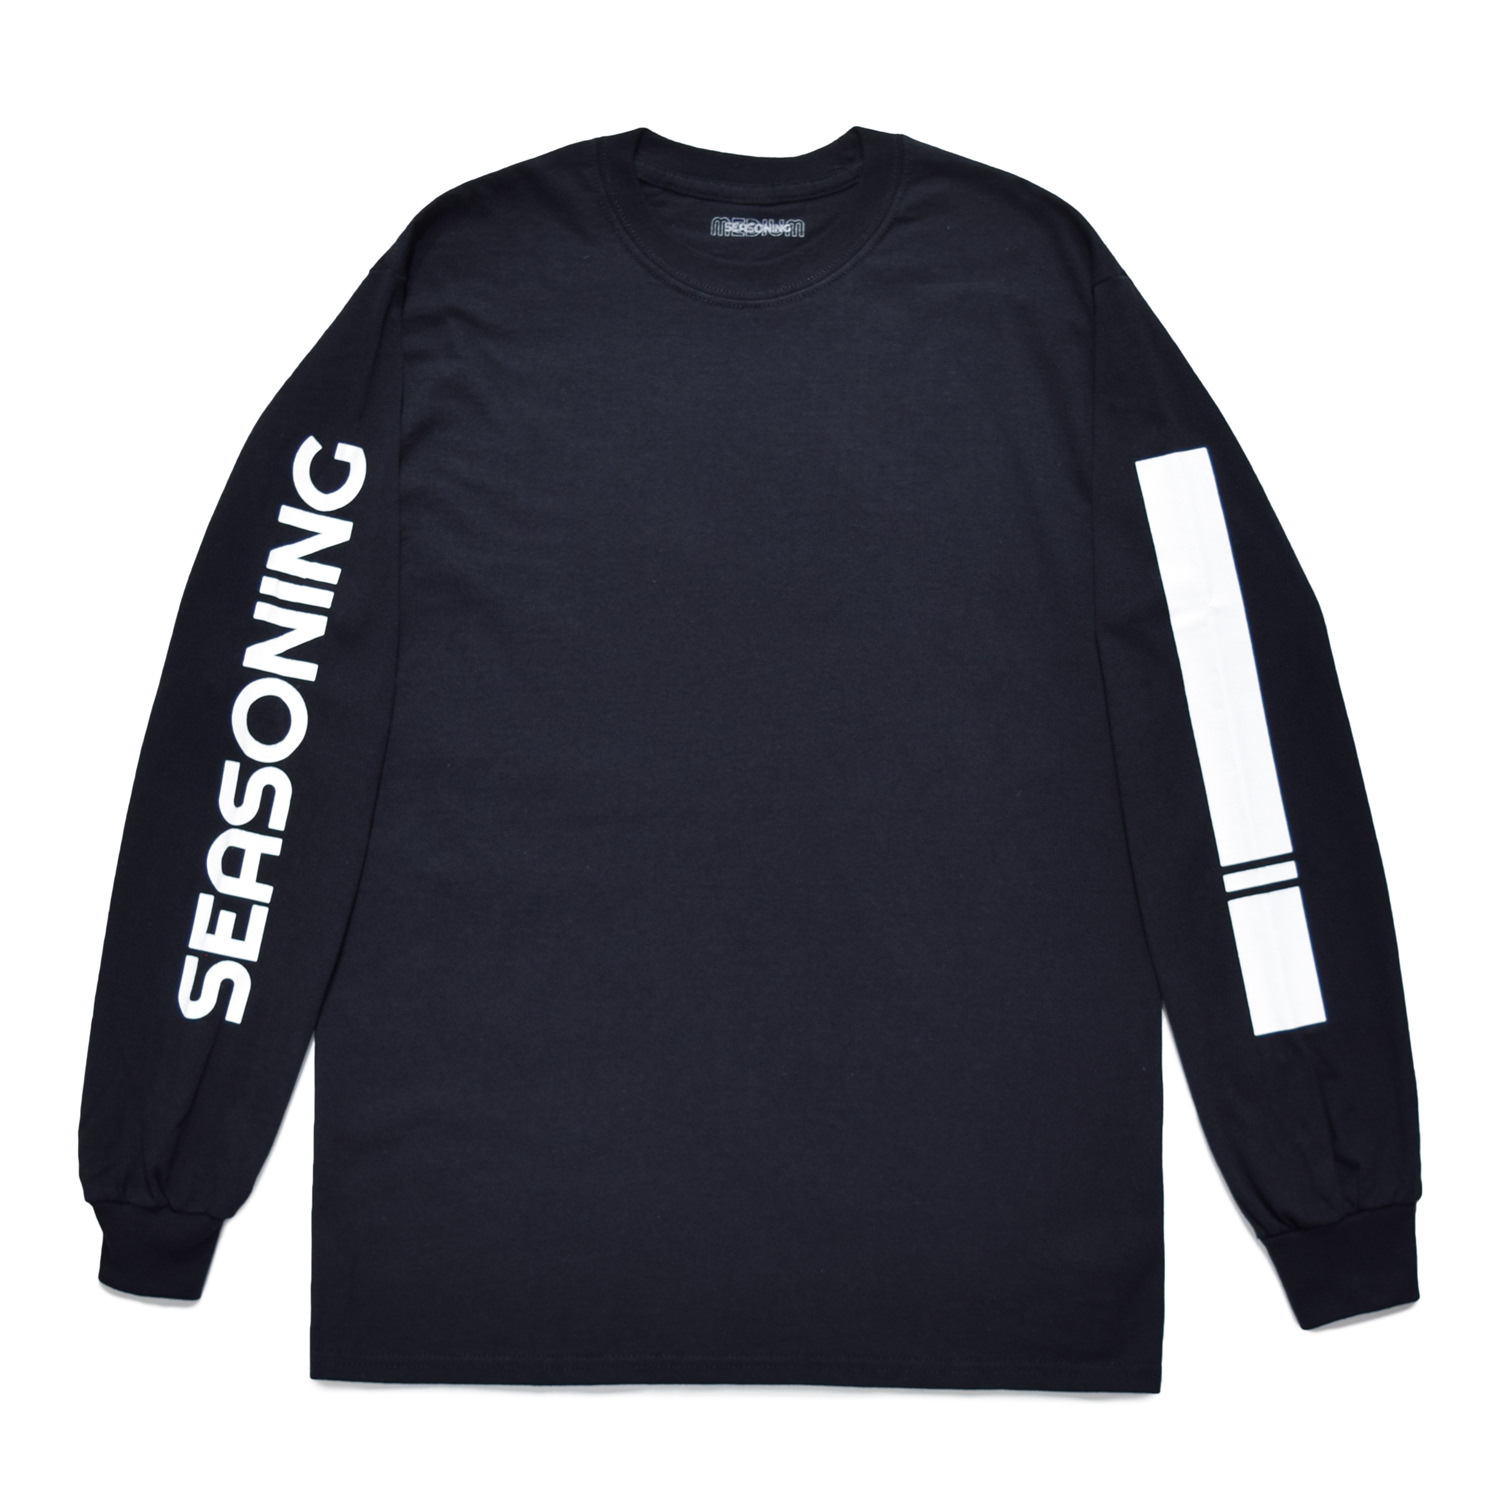 SEASONING LOGO L/S TEE  - BLACK